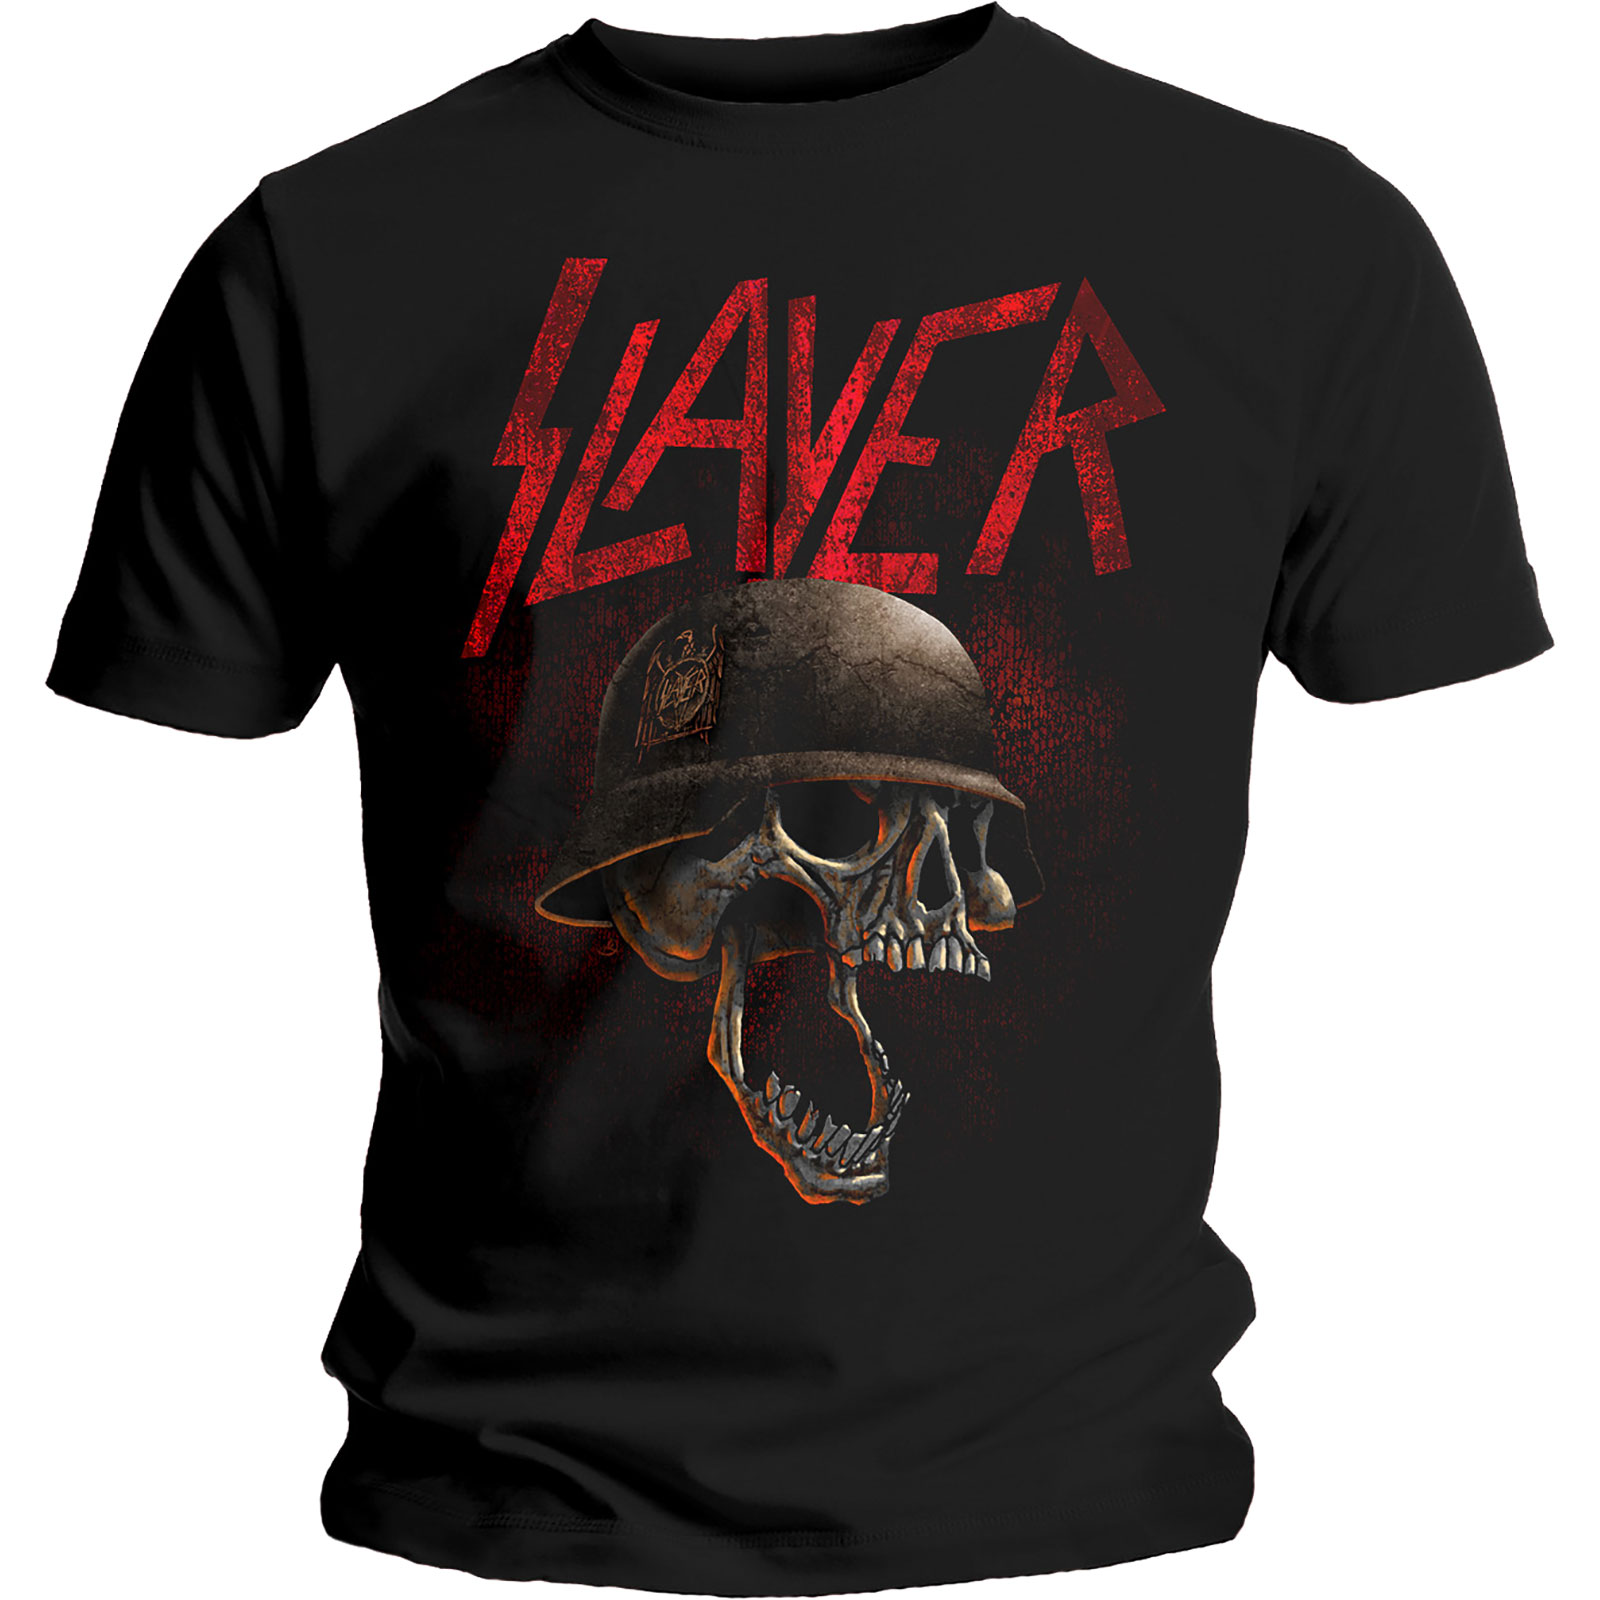 Tričko Slayer Helmitt Mens Black